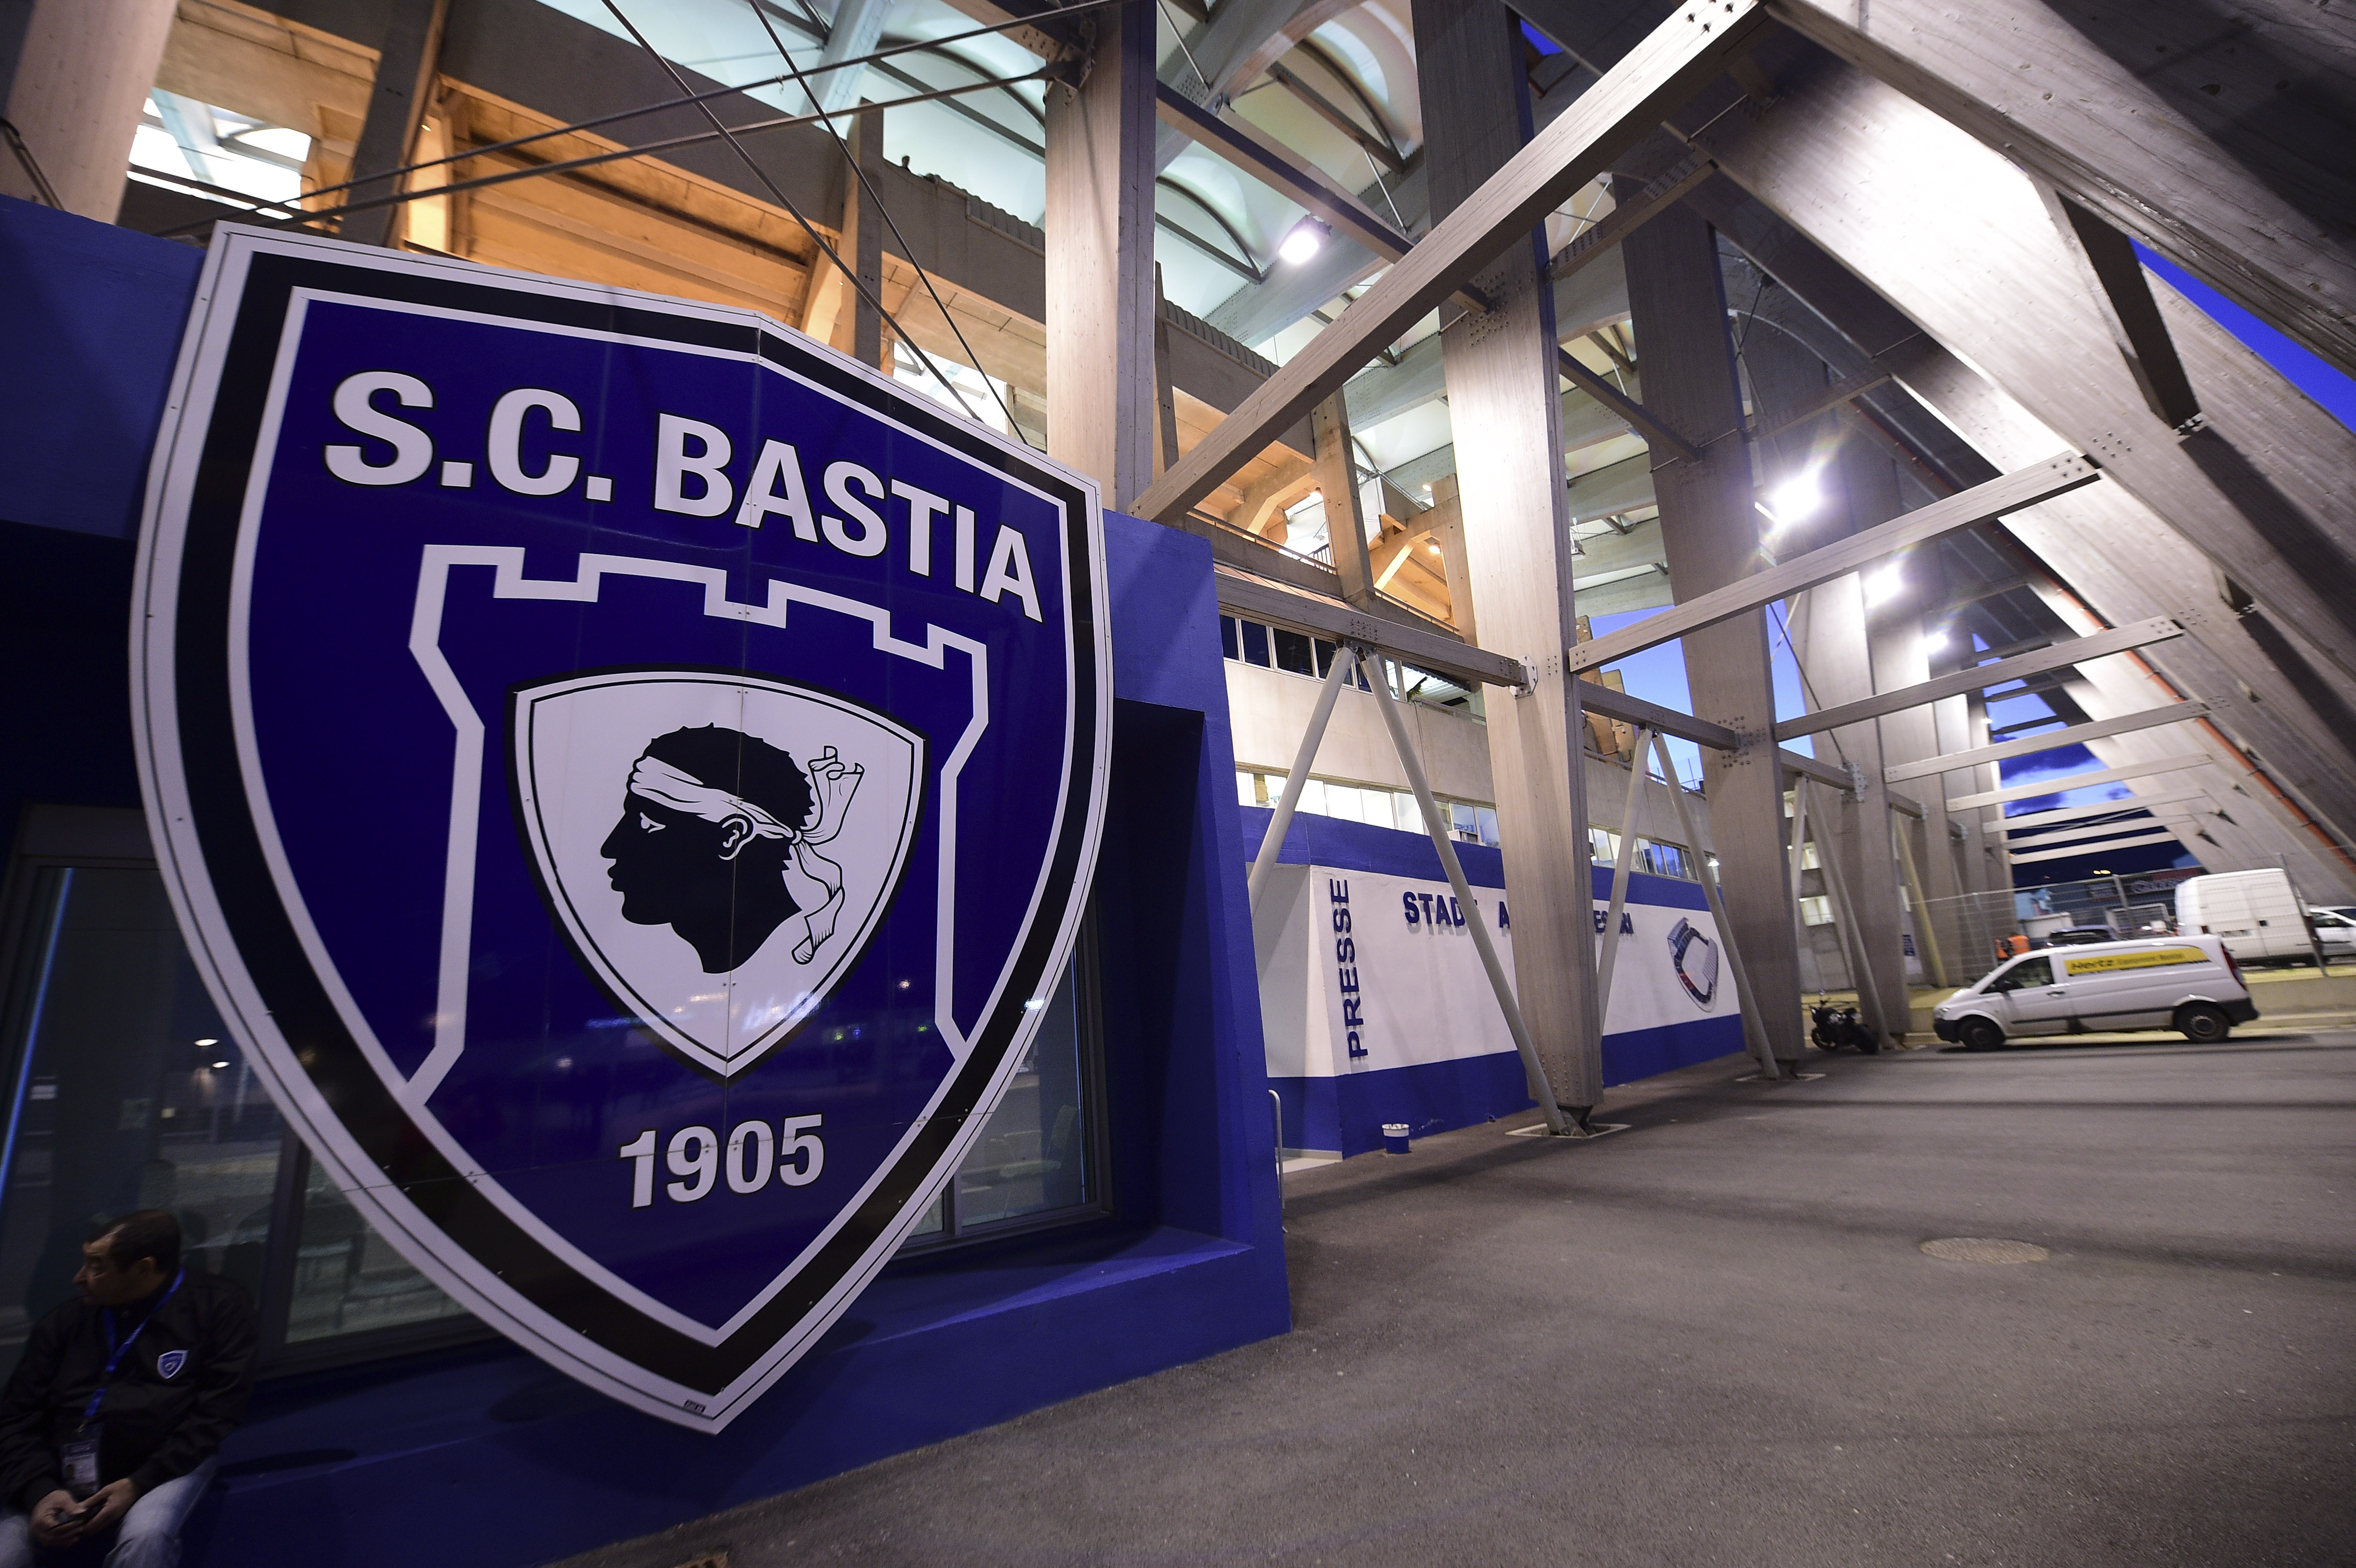 Football - Ligue 2 - Bastia: le CNOSF confirme la relégation en National 1